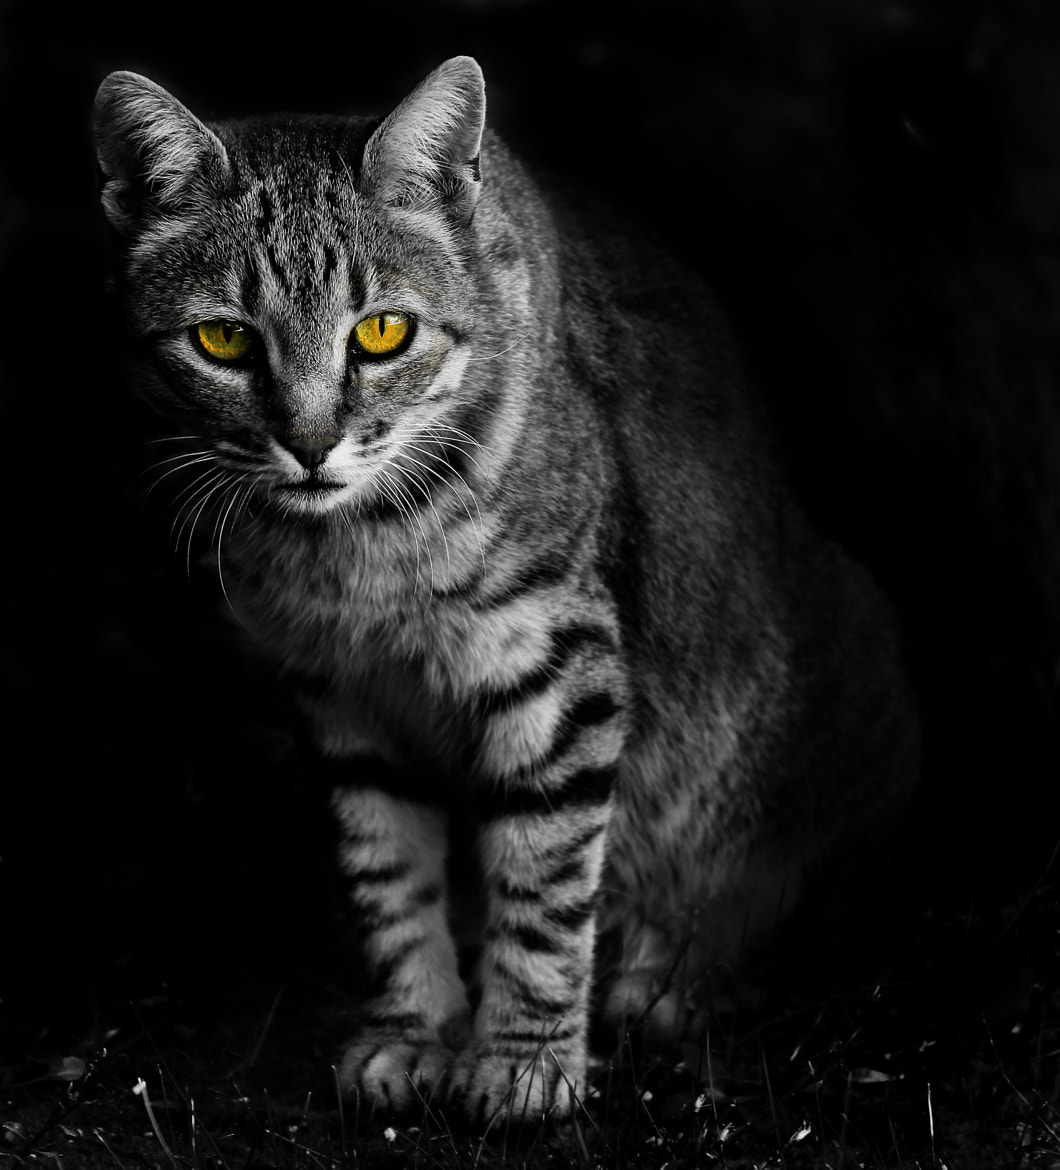 Photograph prrrr... look me in the eye. by carolina madruga on 500px